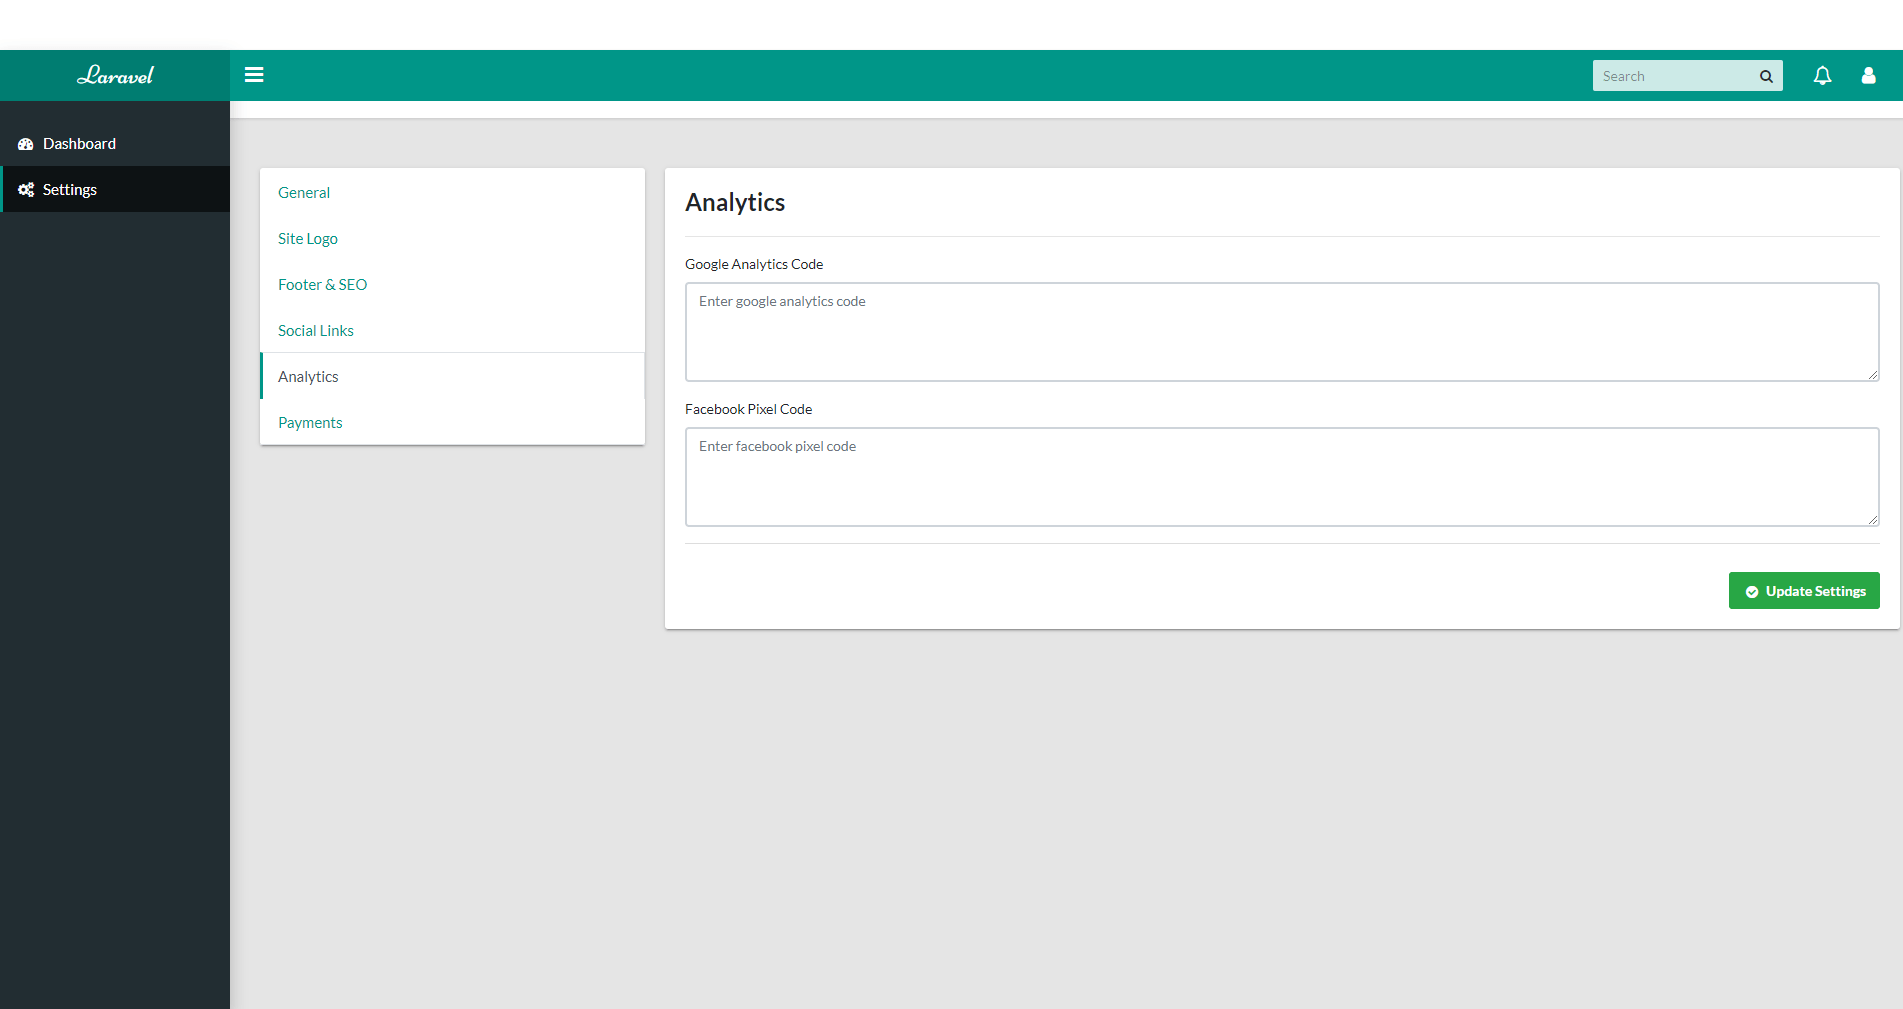 Settings Section - Analytics